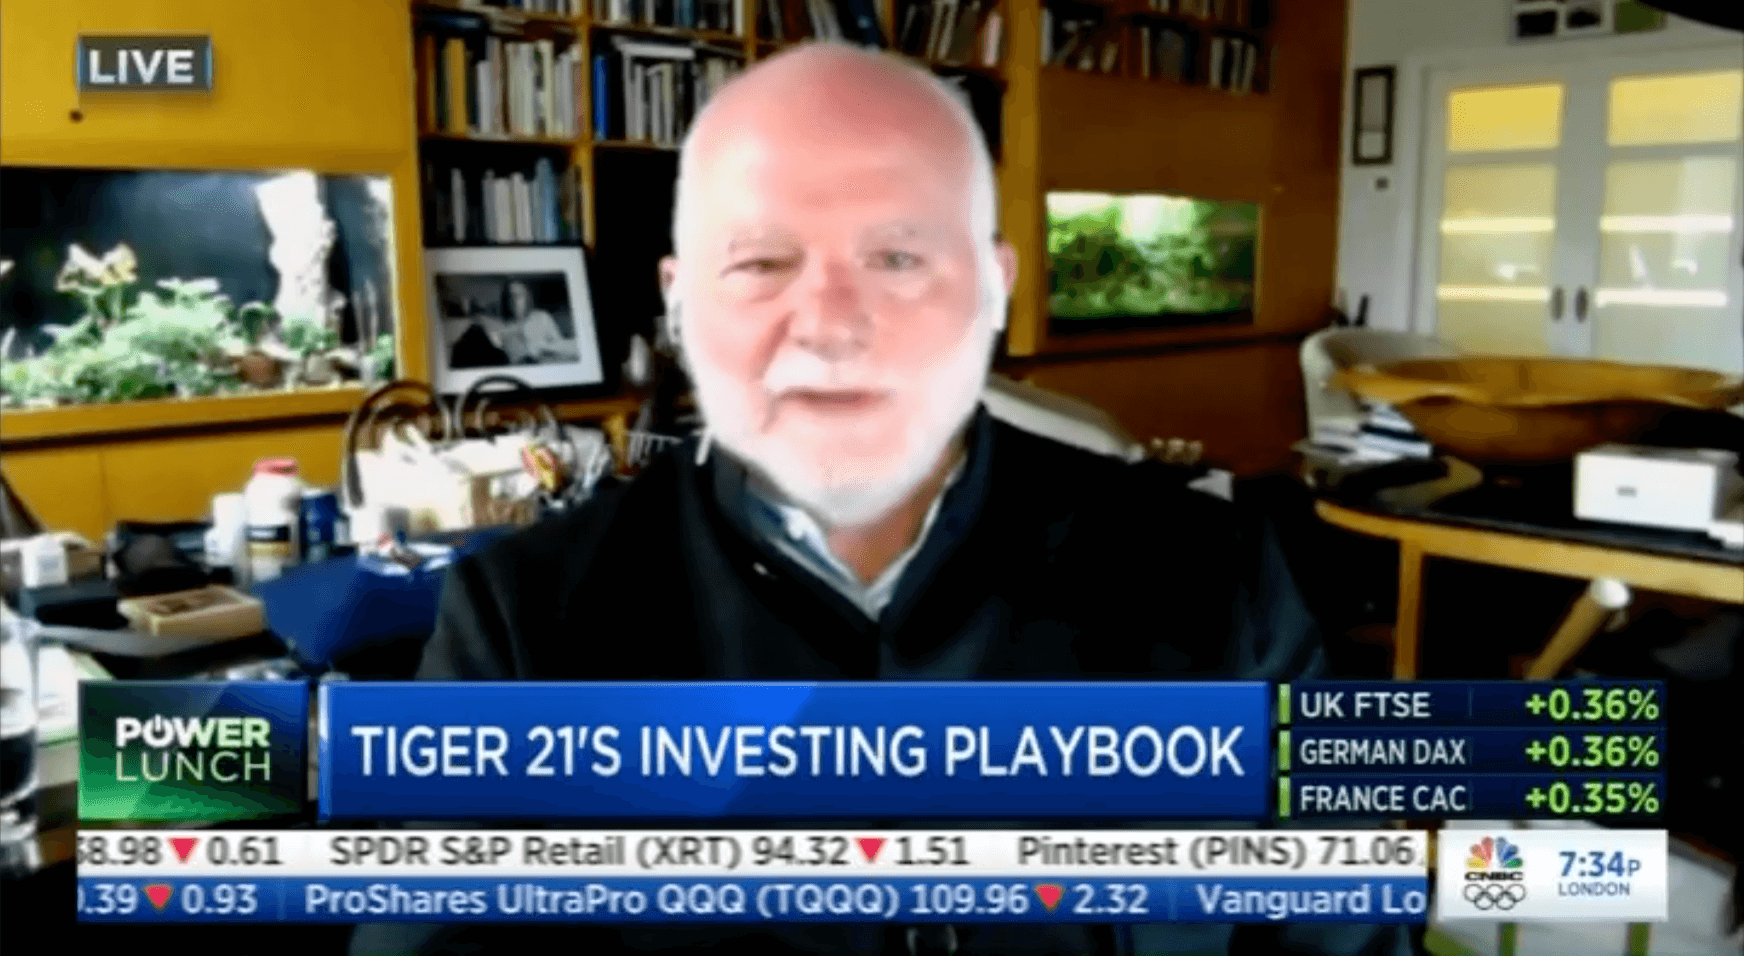 """Public Equities, Real Estate, and Crypto: CNBC """"Power Lunch"""" Interviews TIGER 21 Founder"""